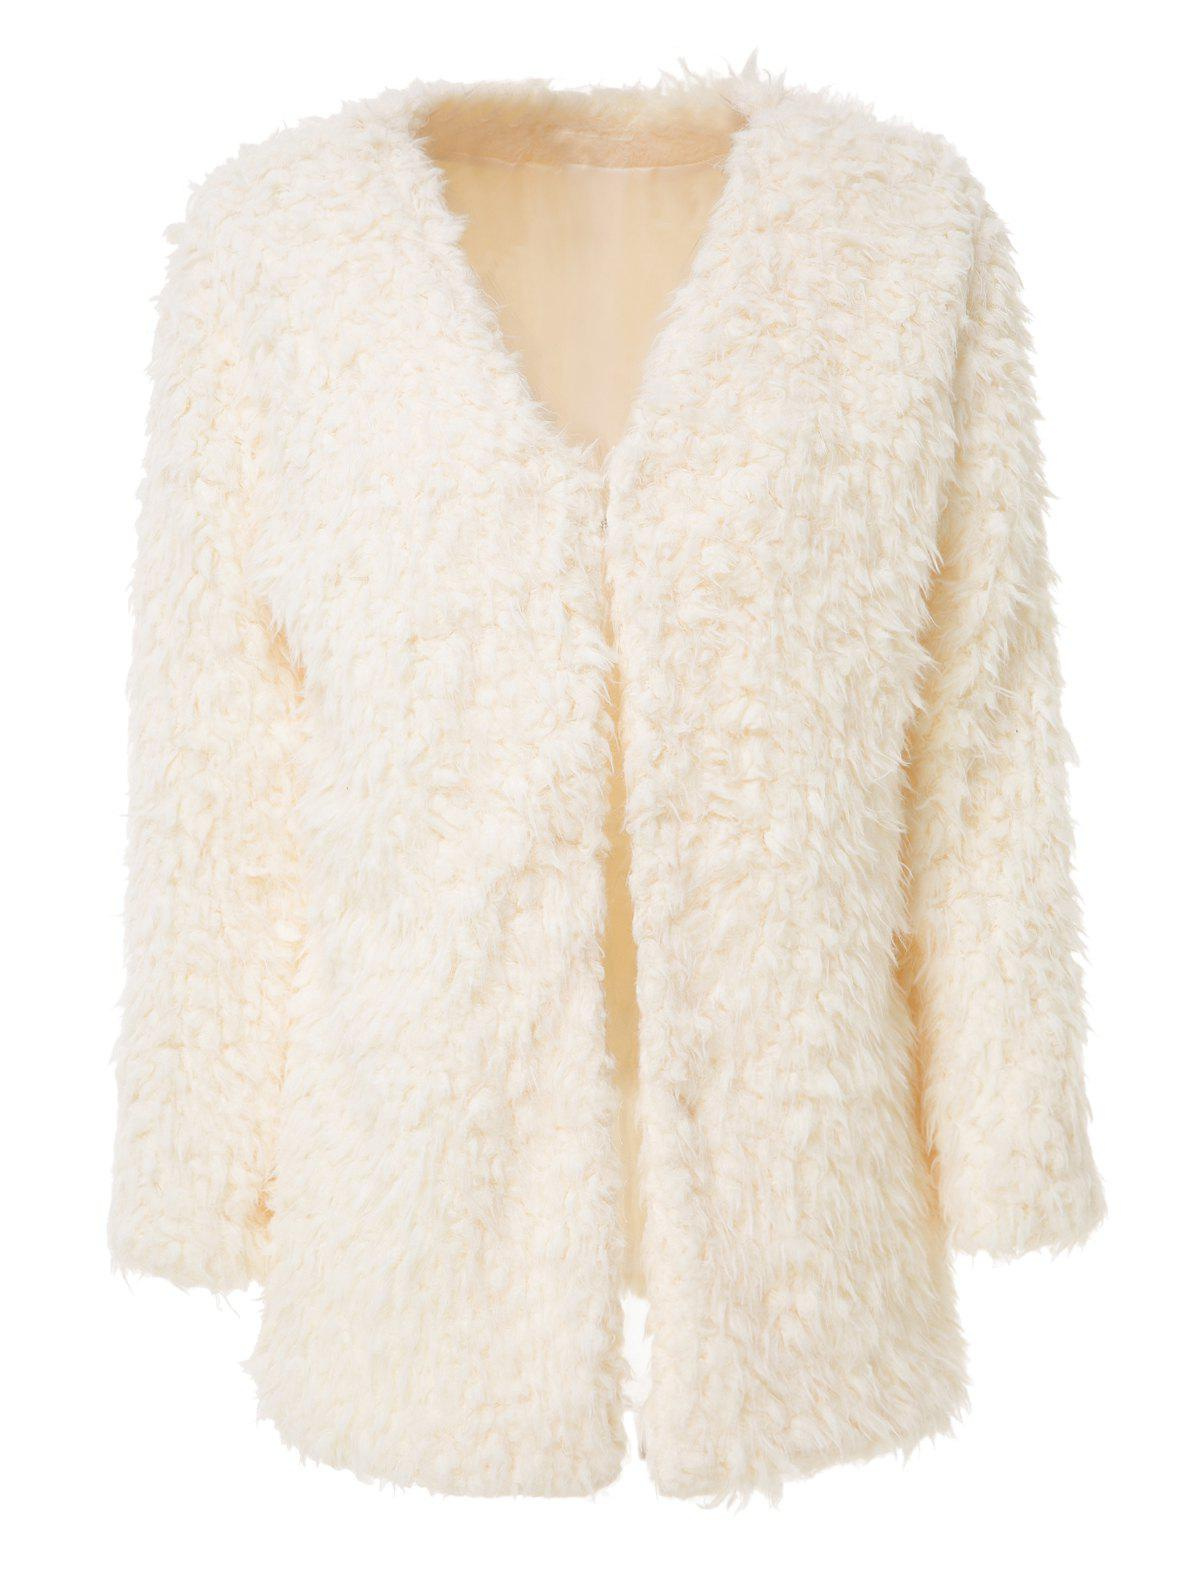 Trendy Women's Collarless Long Sleeve Faux Lambswool Coat - OFF WHITE ONE SIZE(FIT SIZE XS TO M)